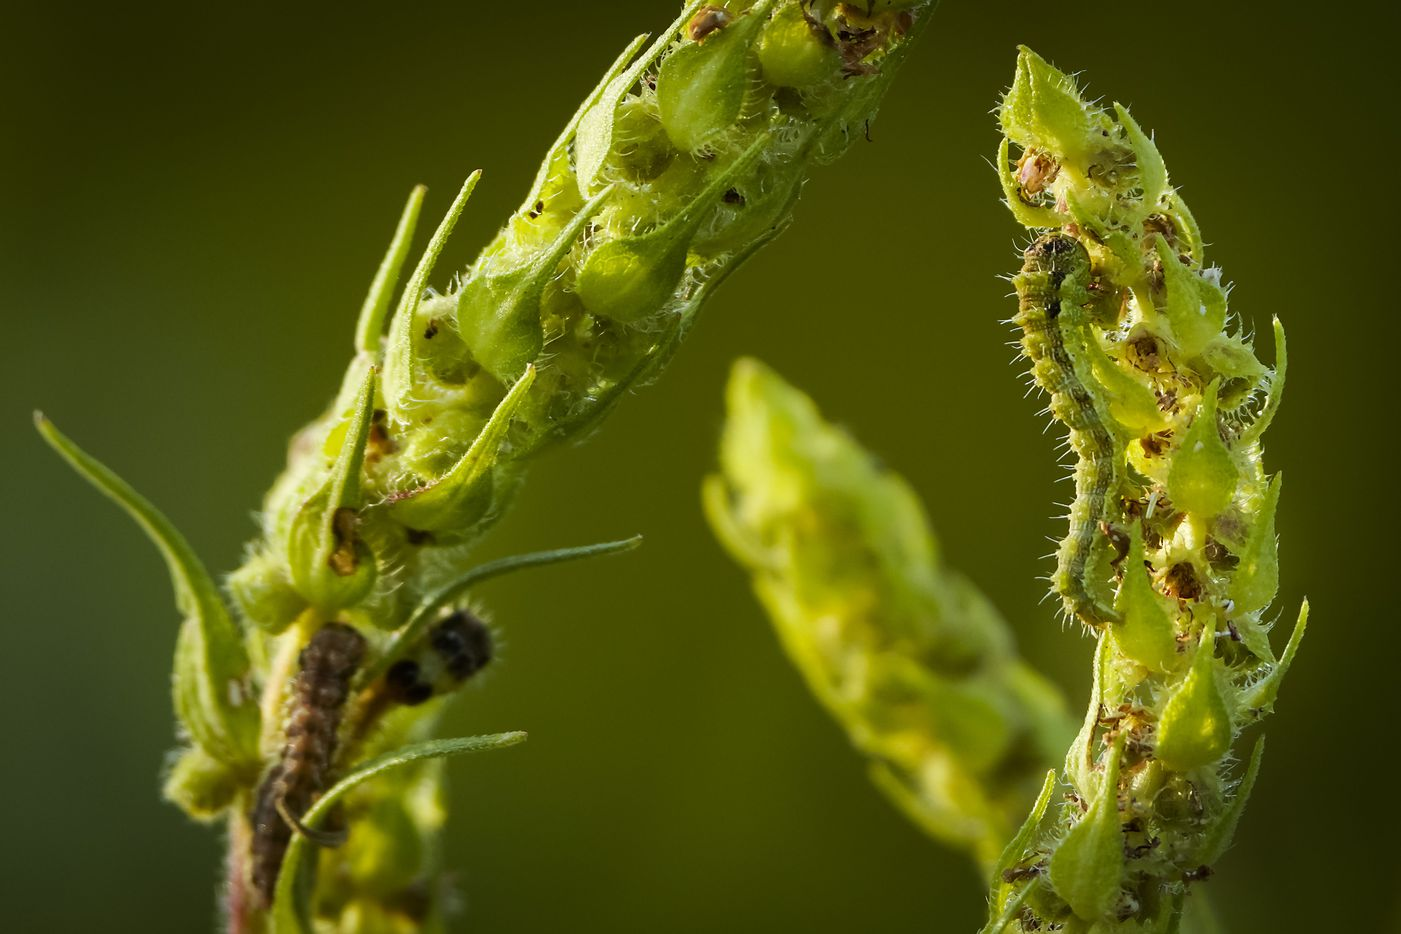 Caterpillars are seen along the Primitive Pond Trail at Trinity River Audubon Center on Wednesday.